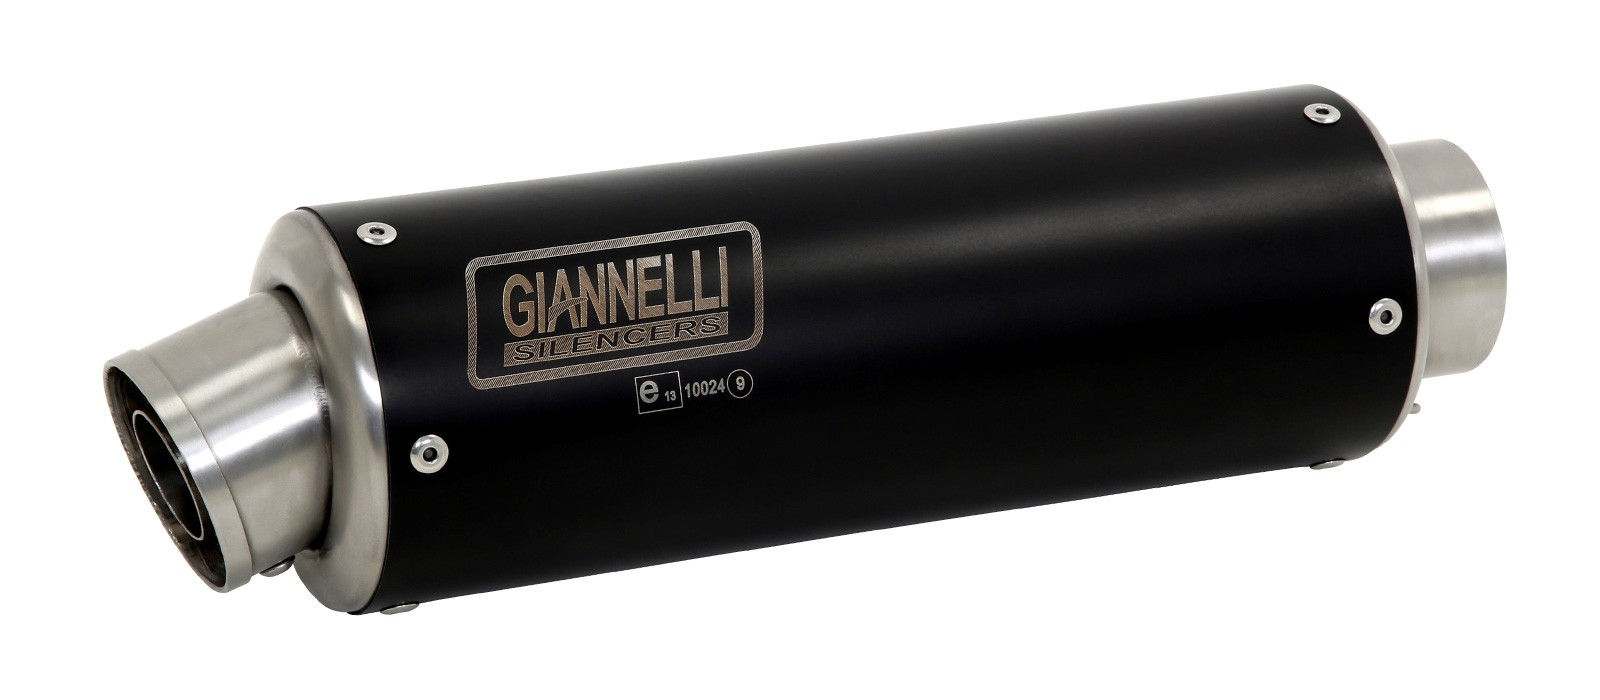 ESCAPES GIANNELLI YAMAHA - Sistema completo in nicrom black X-PRO con colector racing Yamaha T-MAX 530 Giannelli 73585XP